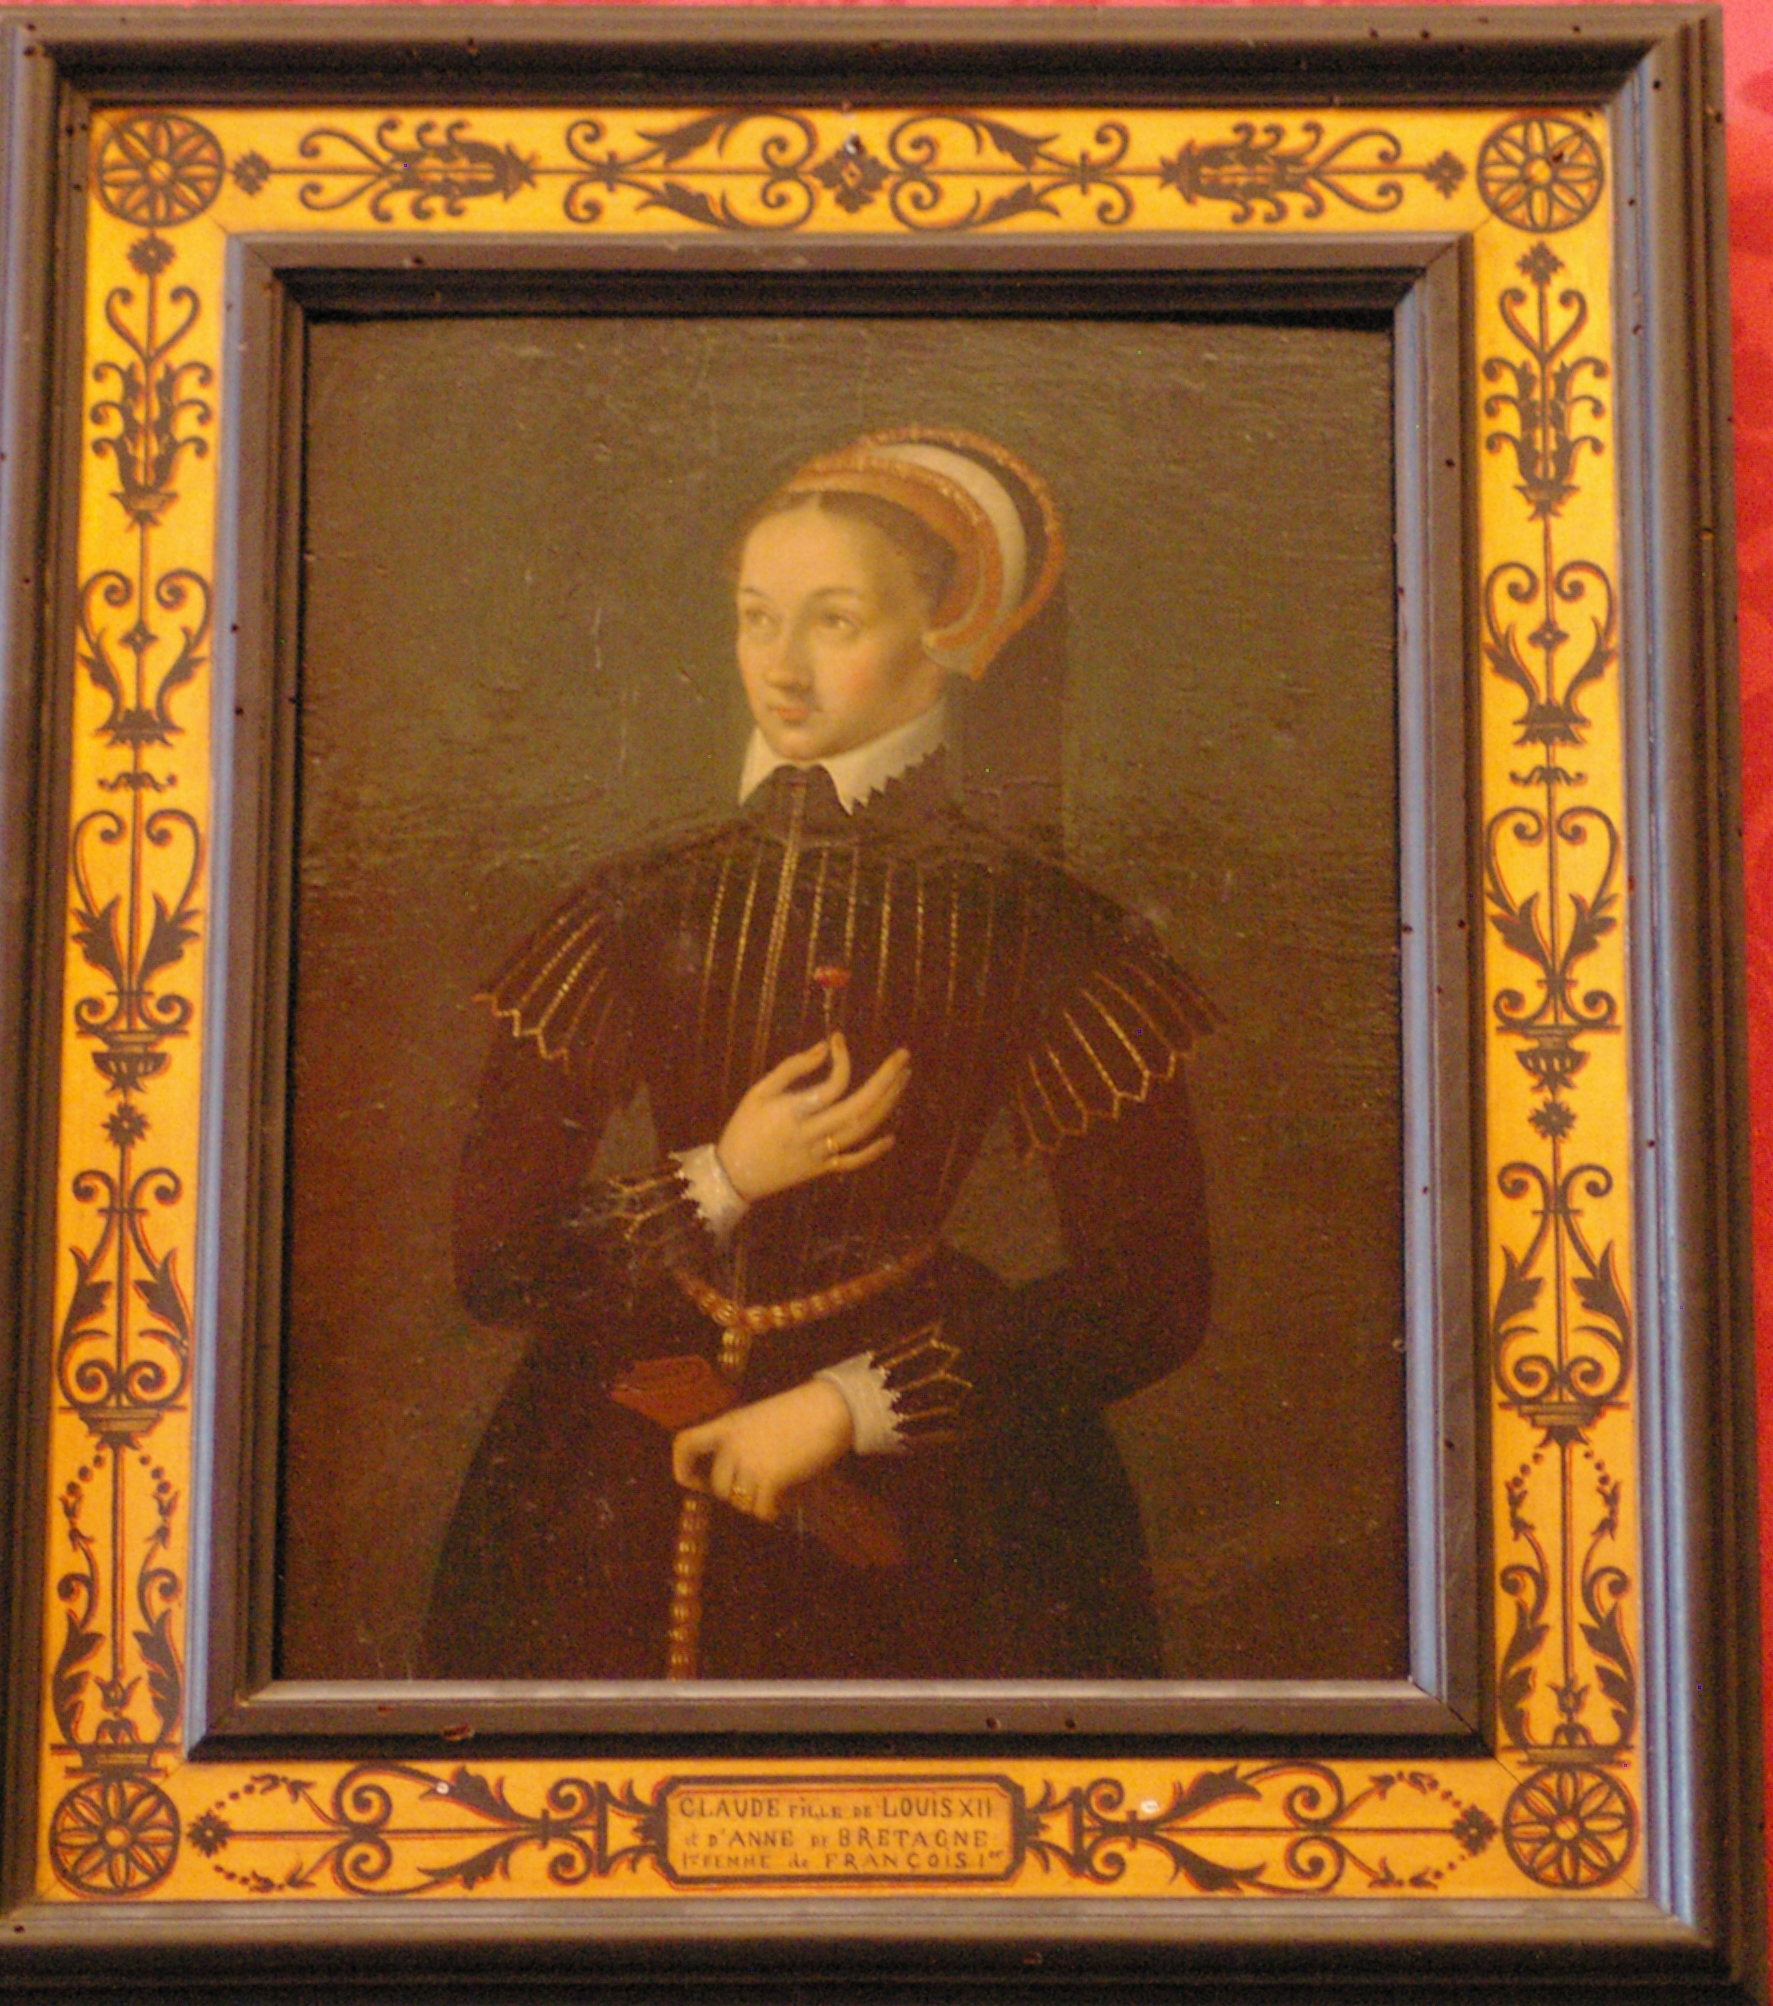 1520s - Claude - daughter of Louis XII and Anne de Bretaigne